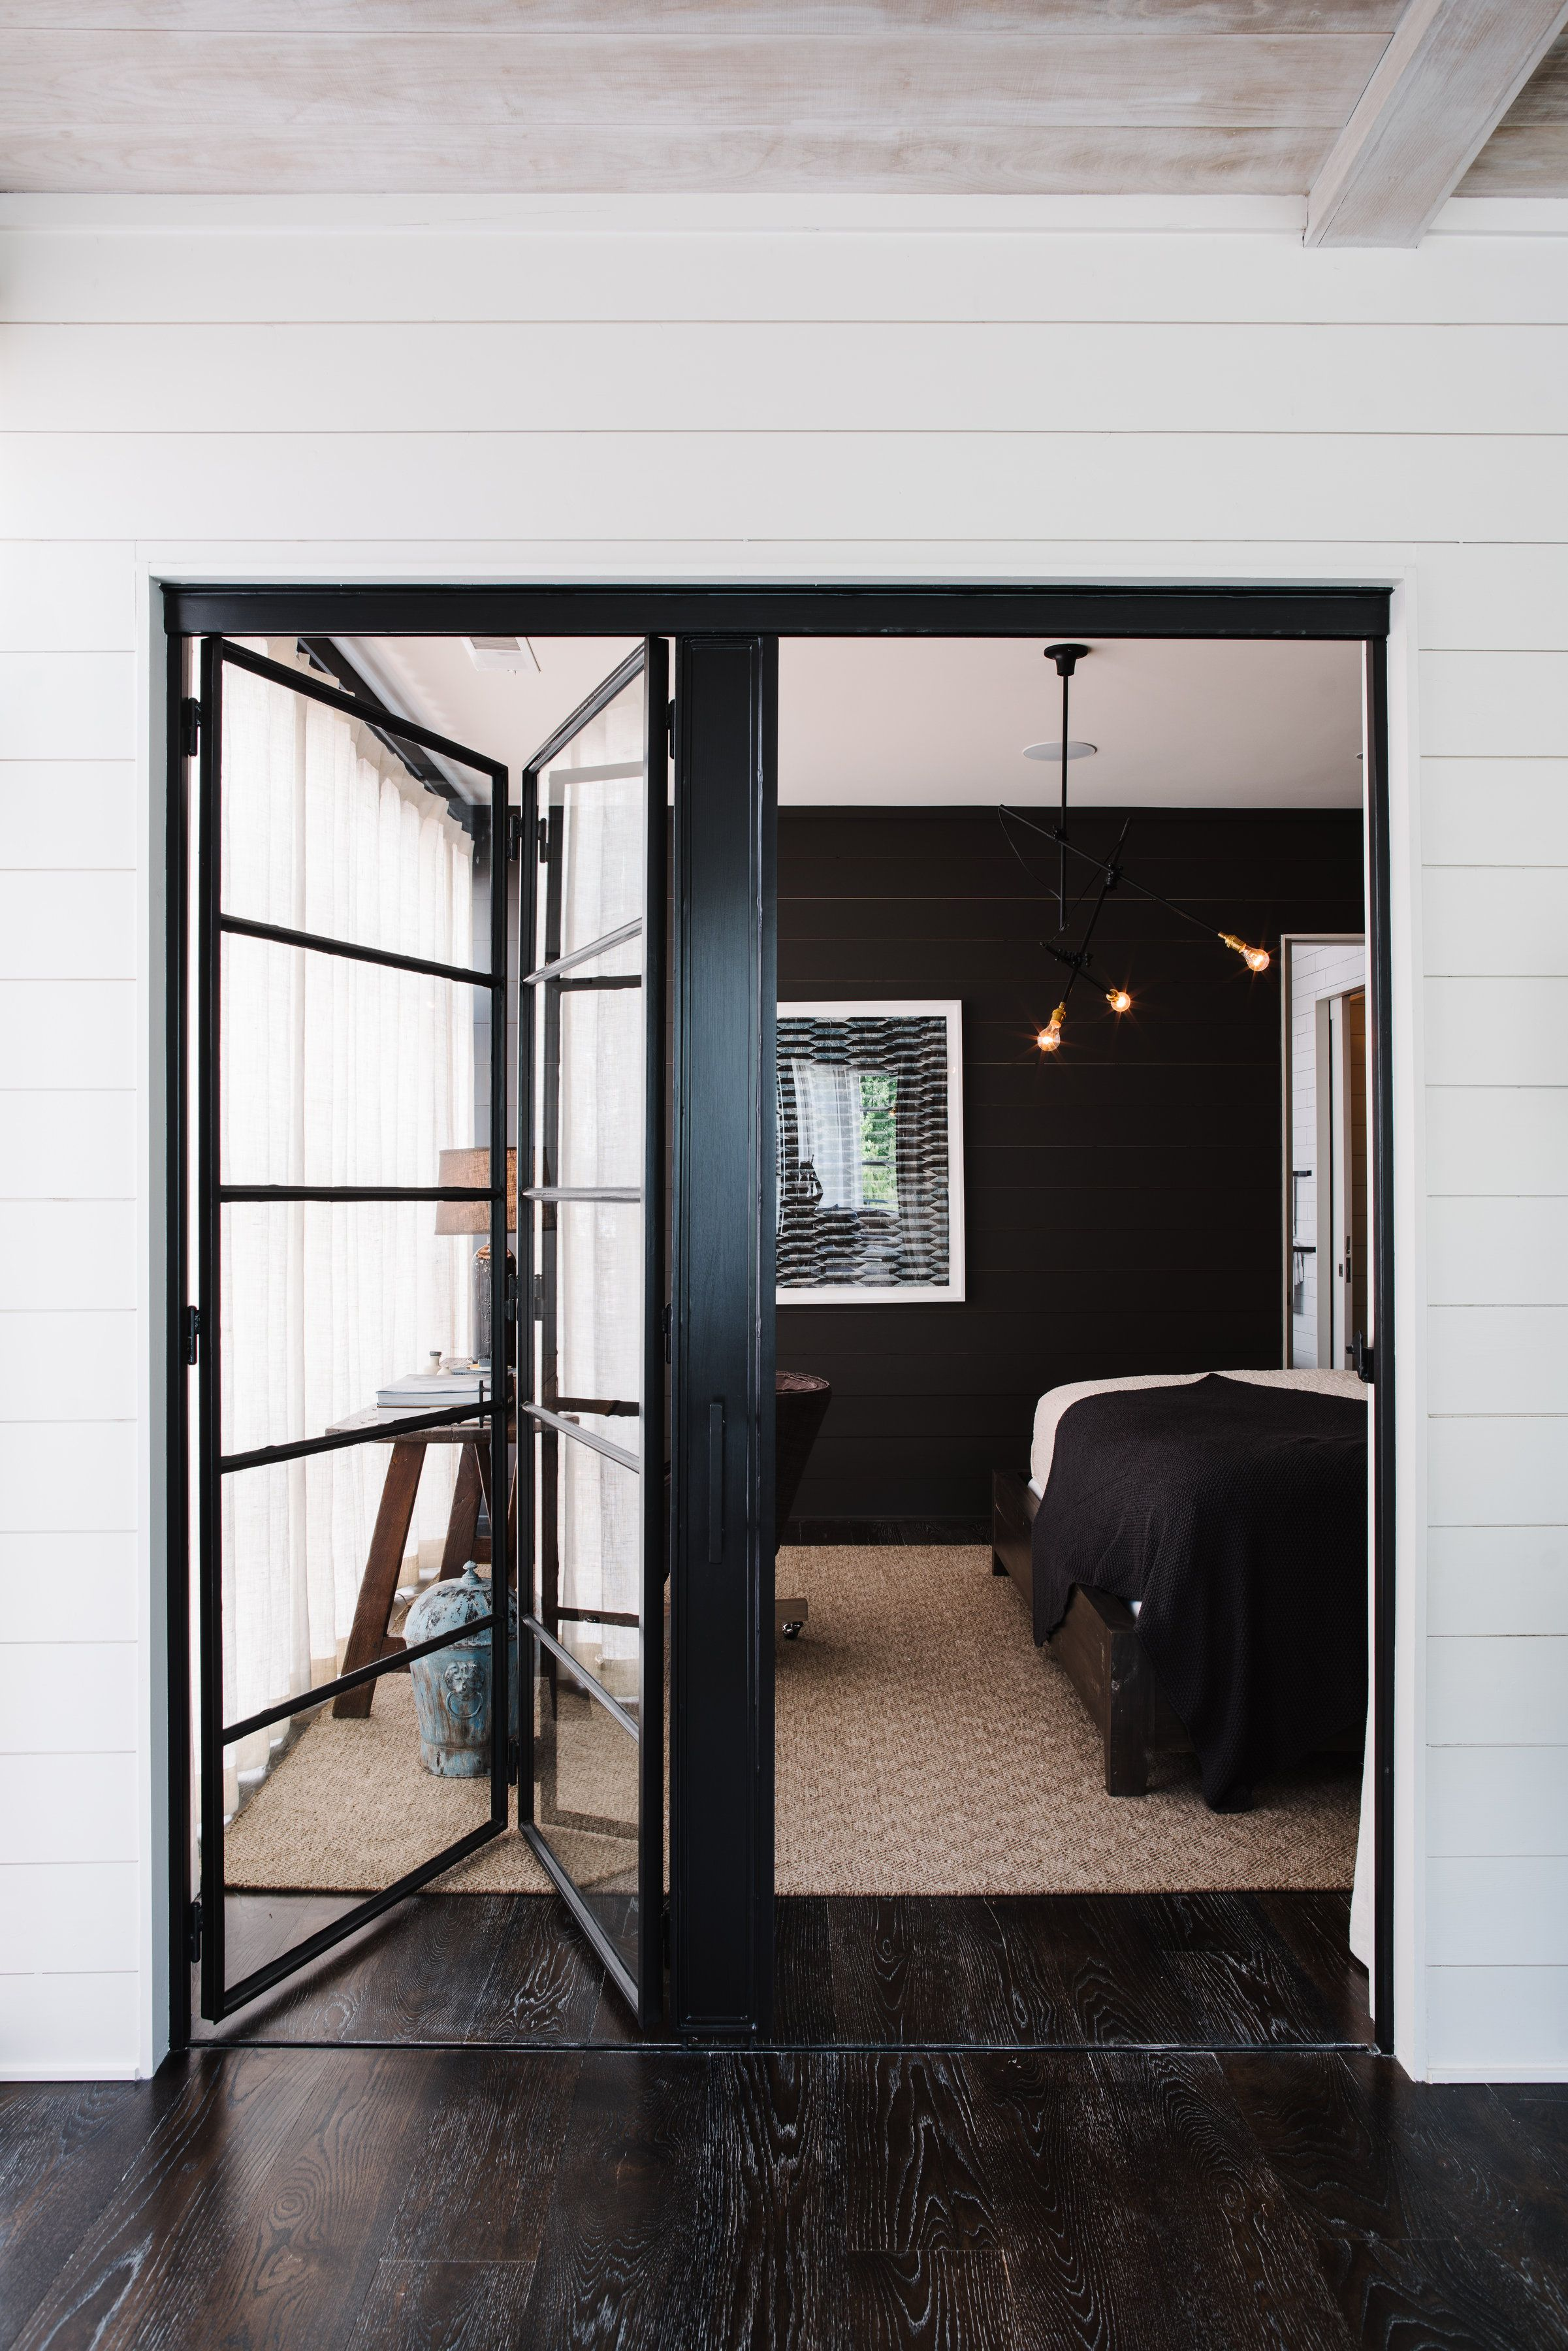 House design with sliding window  stunning door leading to bedroom  smith hanes studio  humble abode